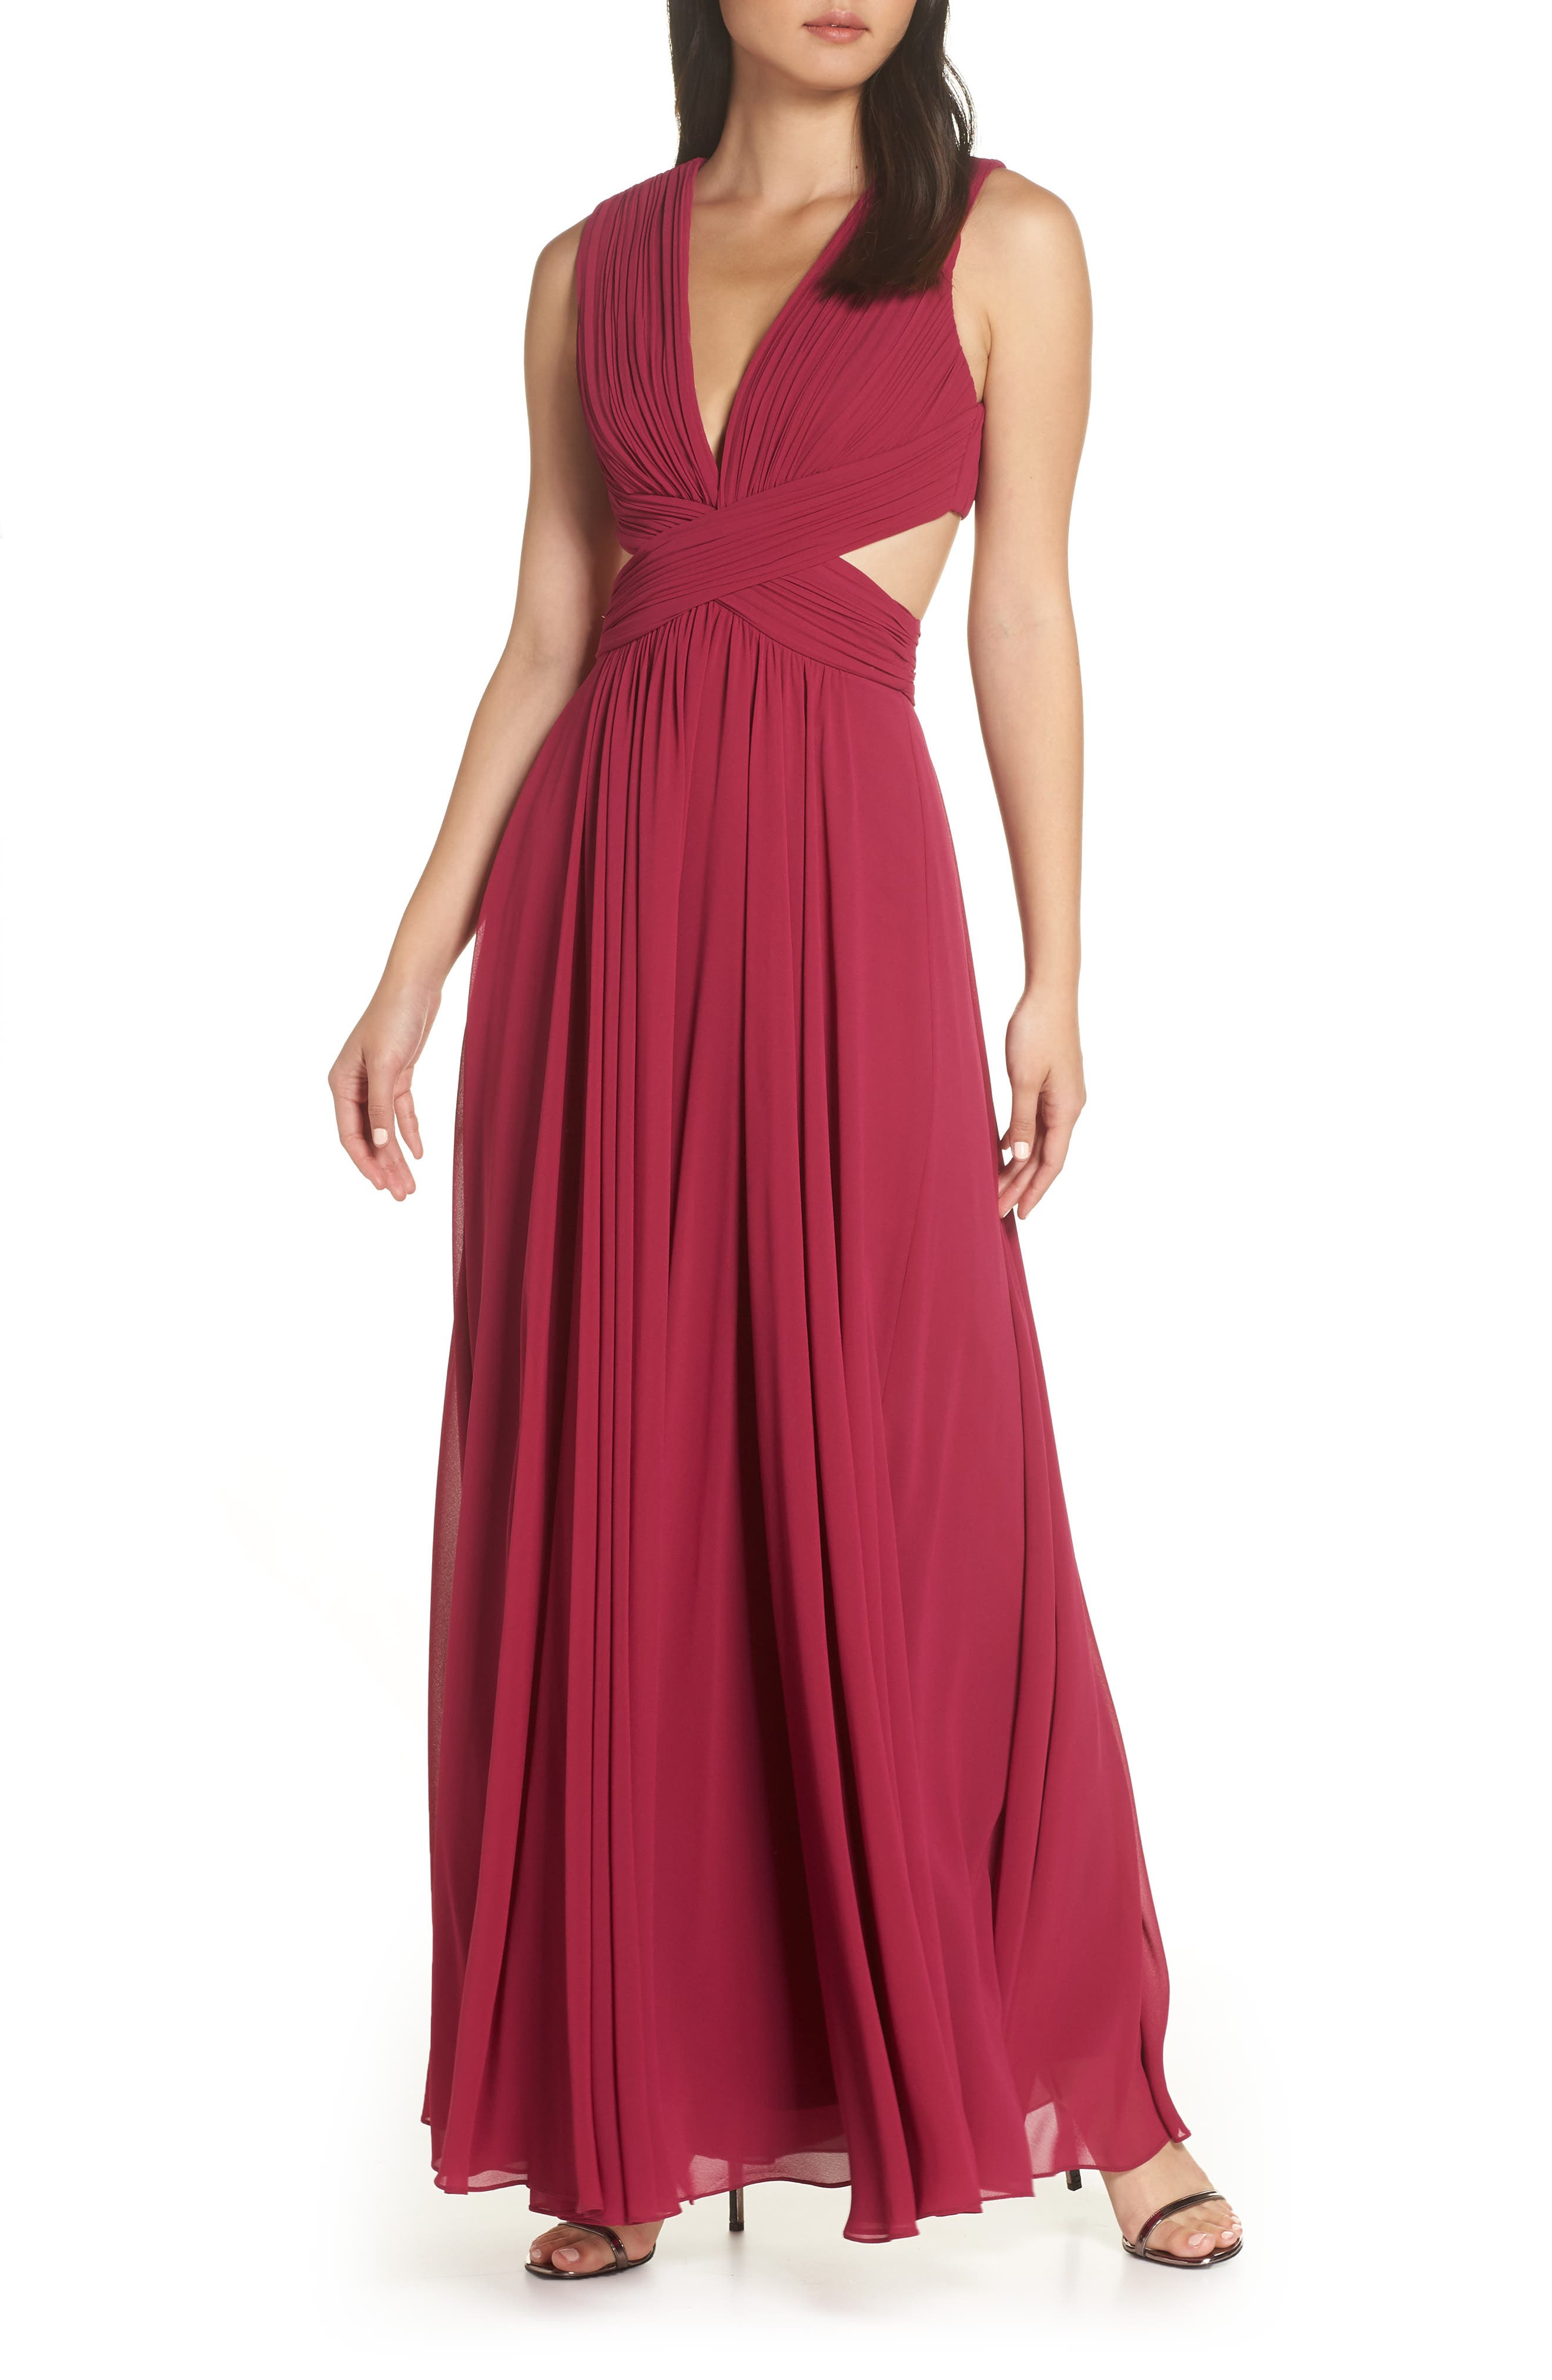 Lulus Vivid Imagination Chiffon Gown, Red